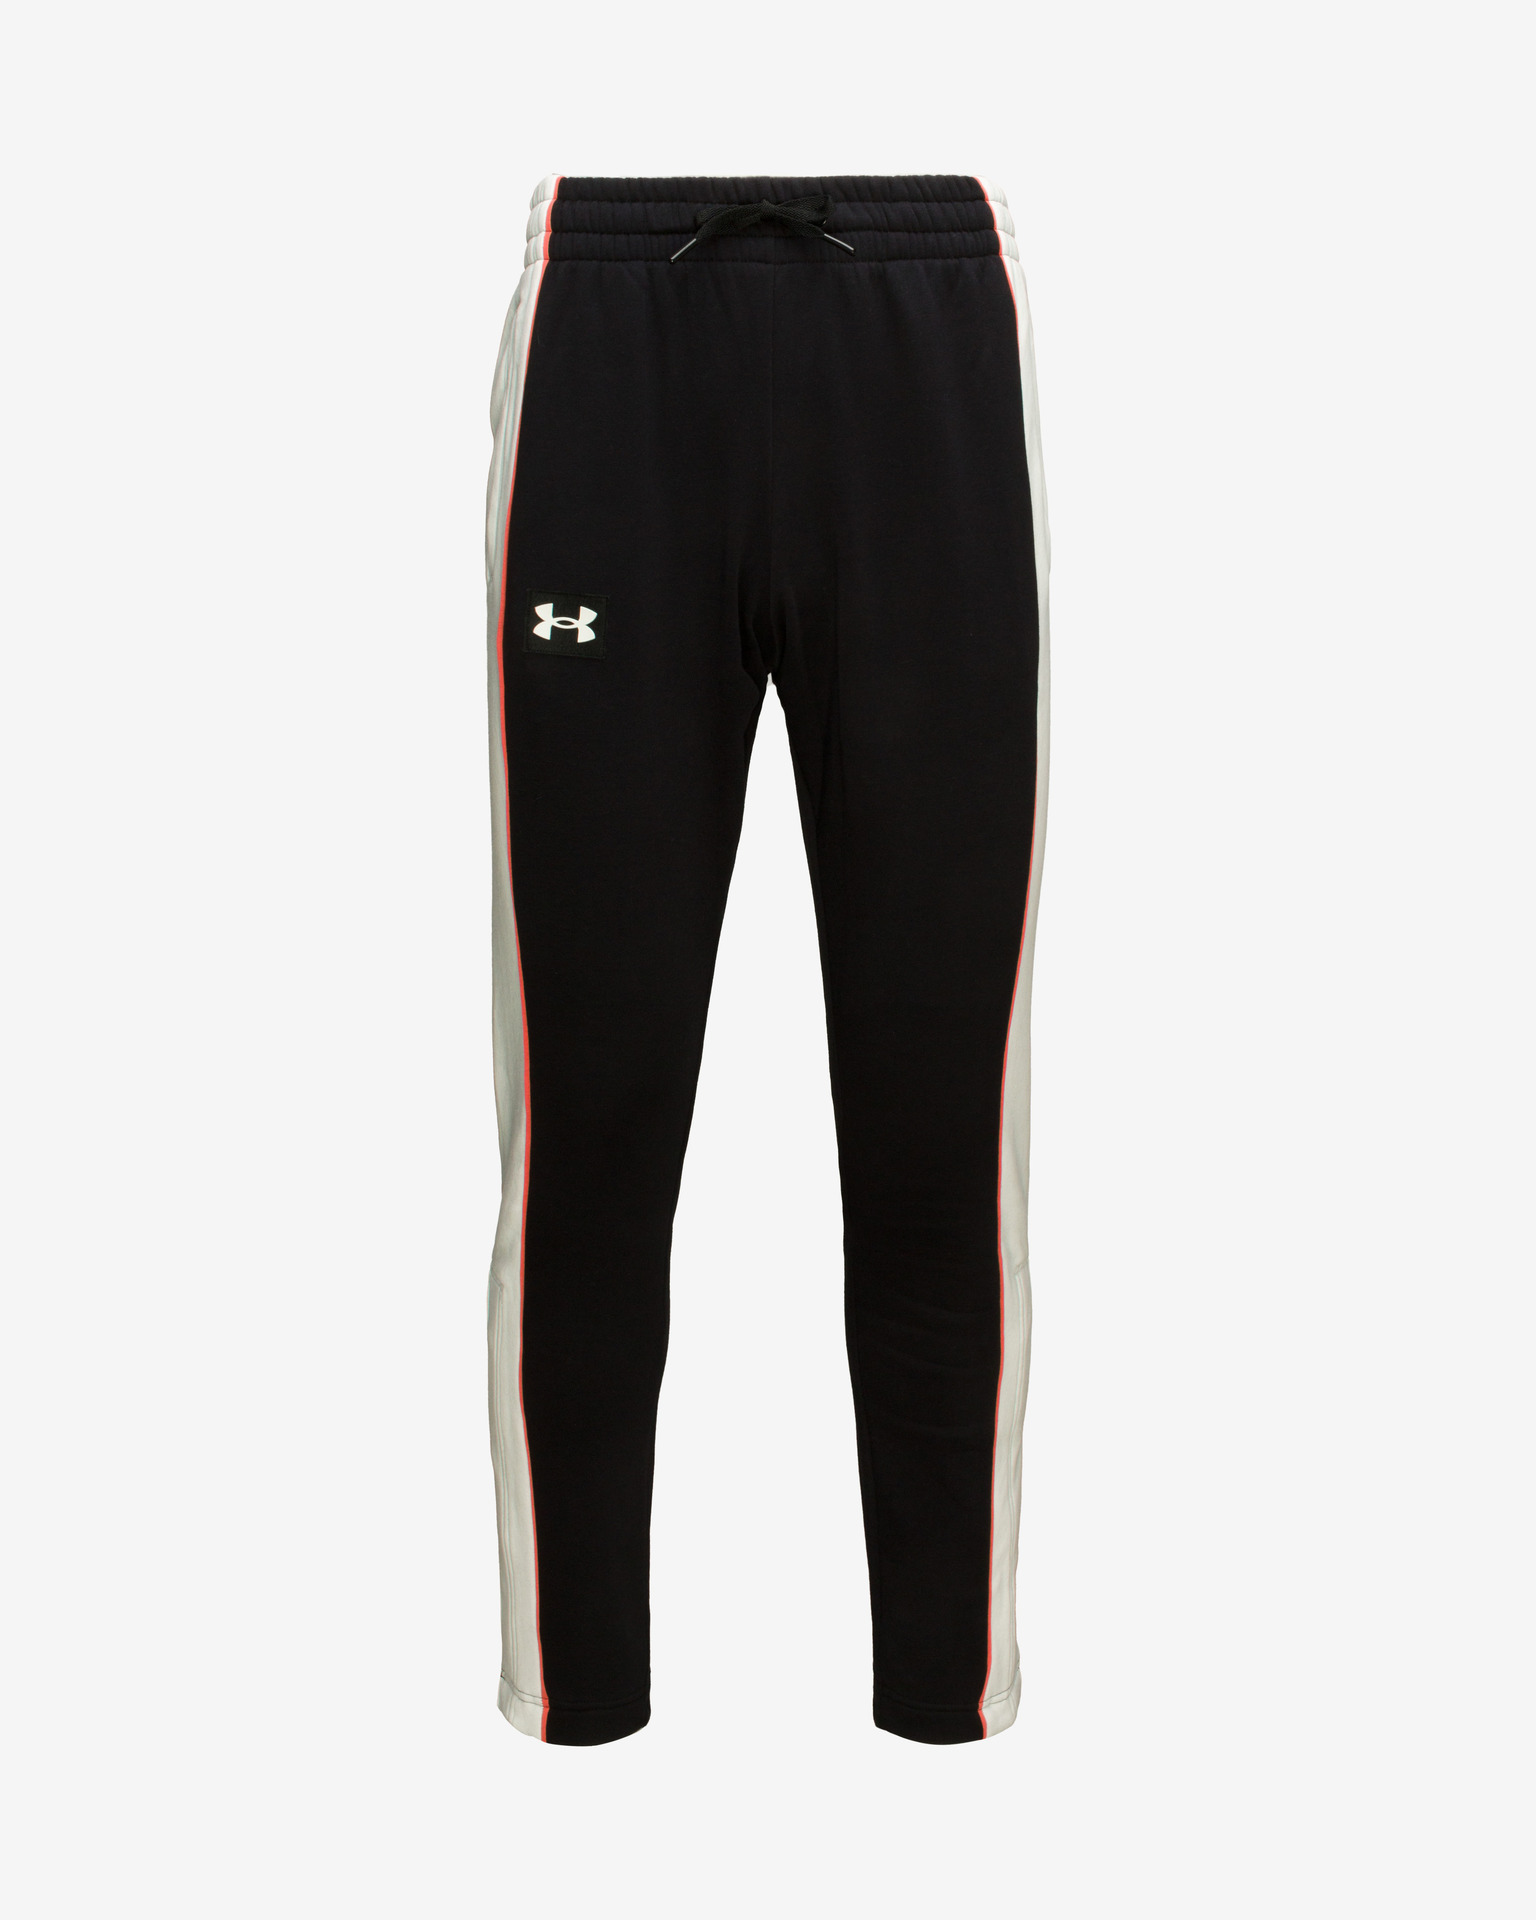 Rival Fleece AMP Tepláky Under Armour